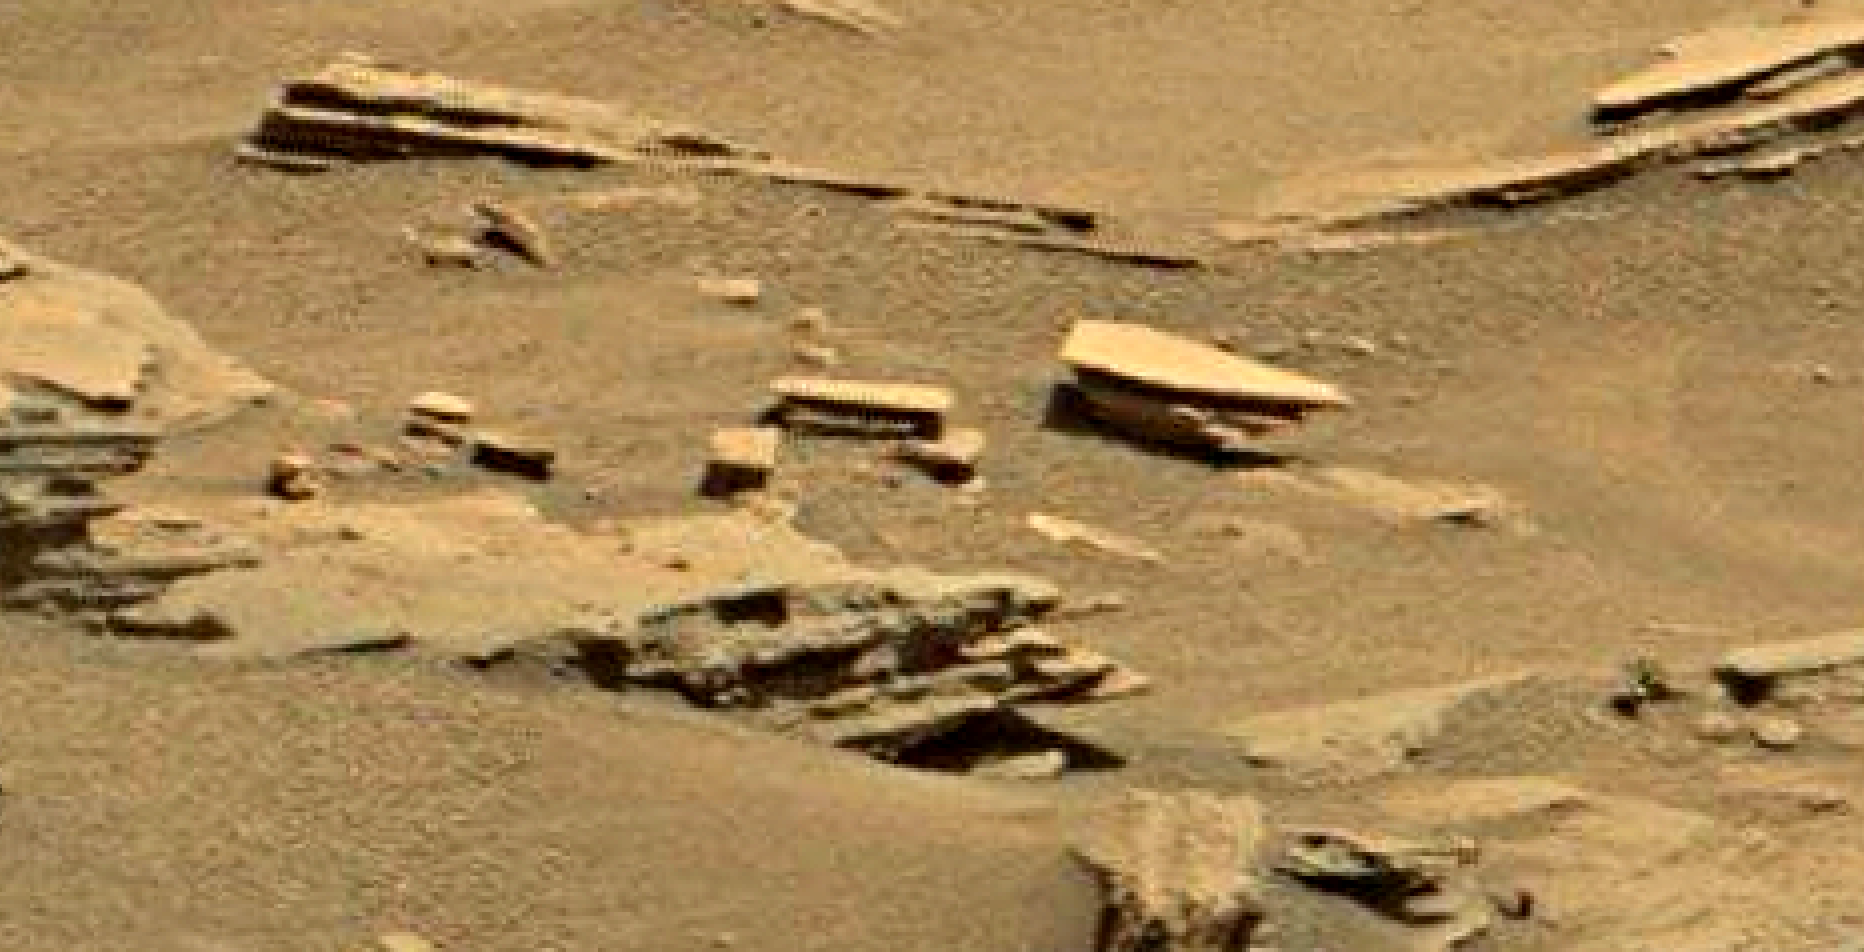 mars sol 1346 anomaly-artifacts 9 was life on mars